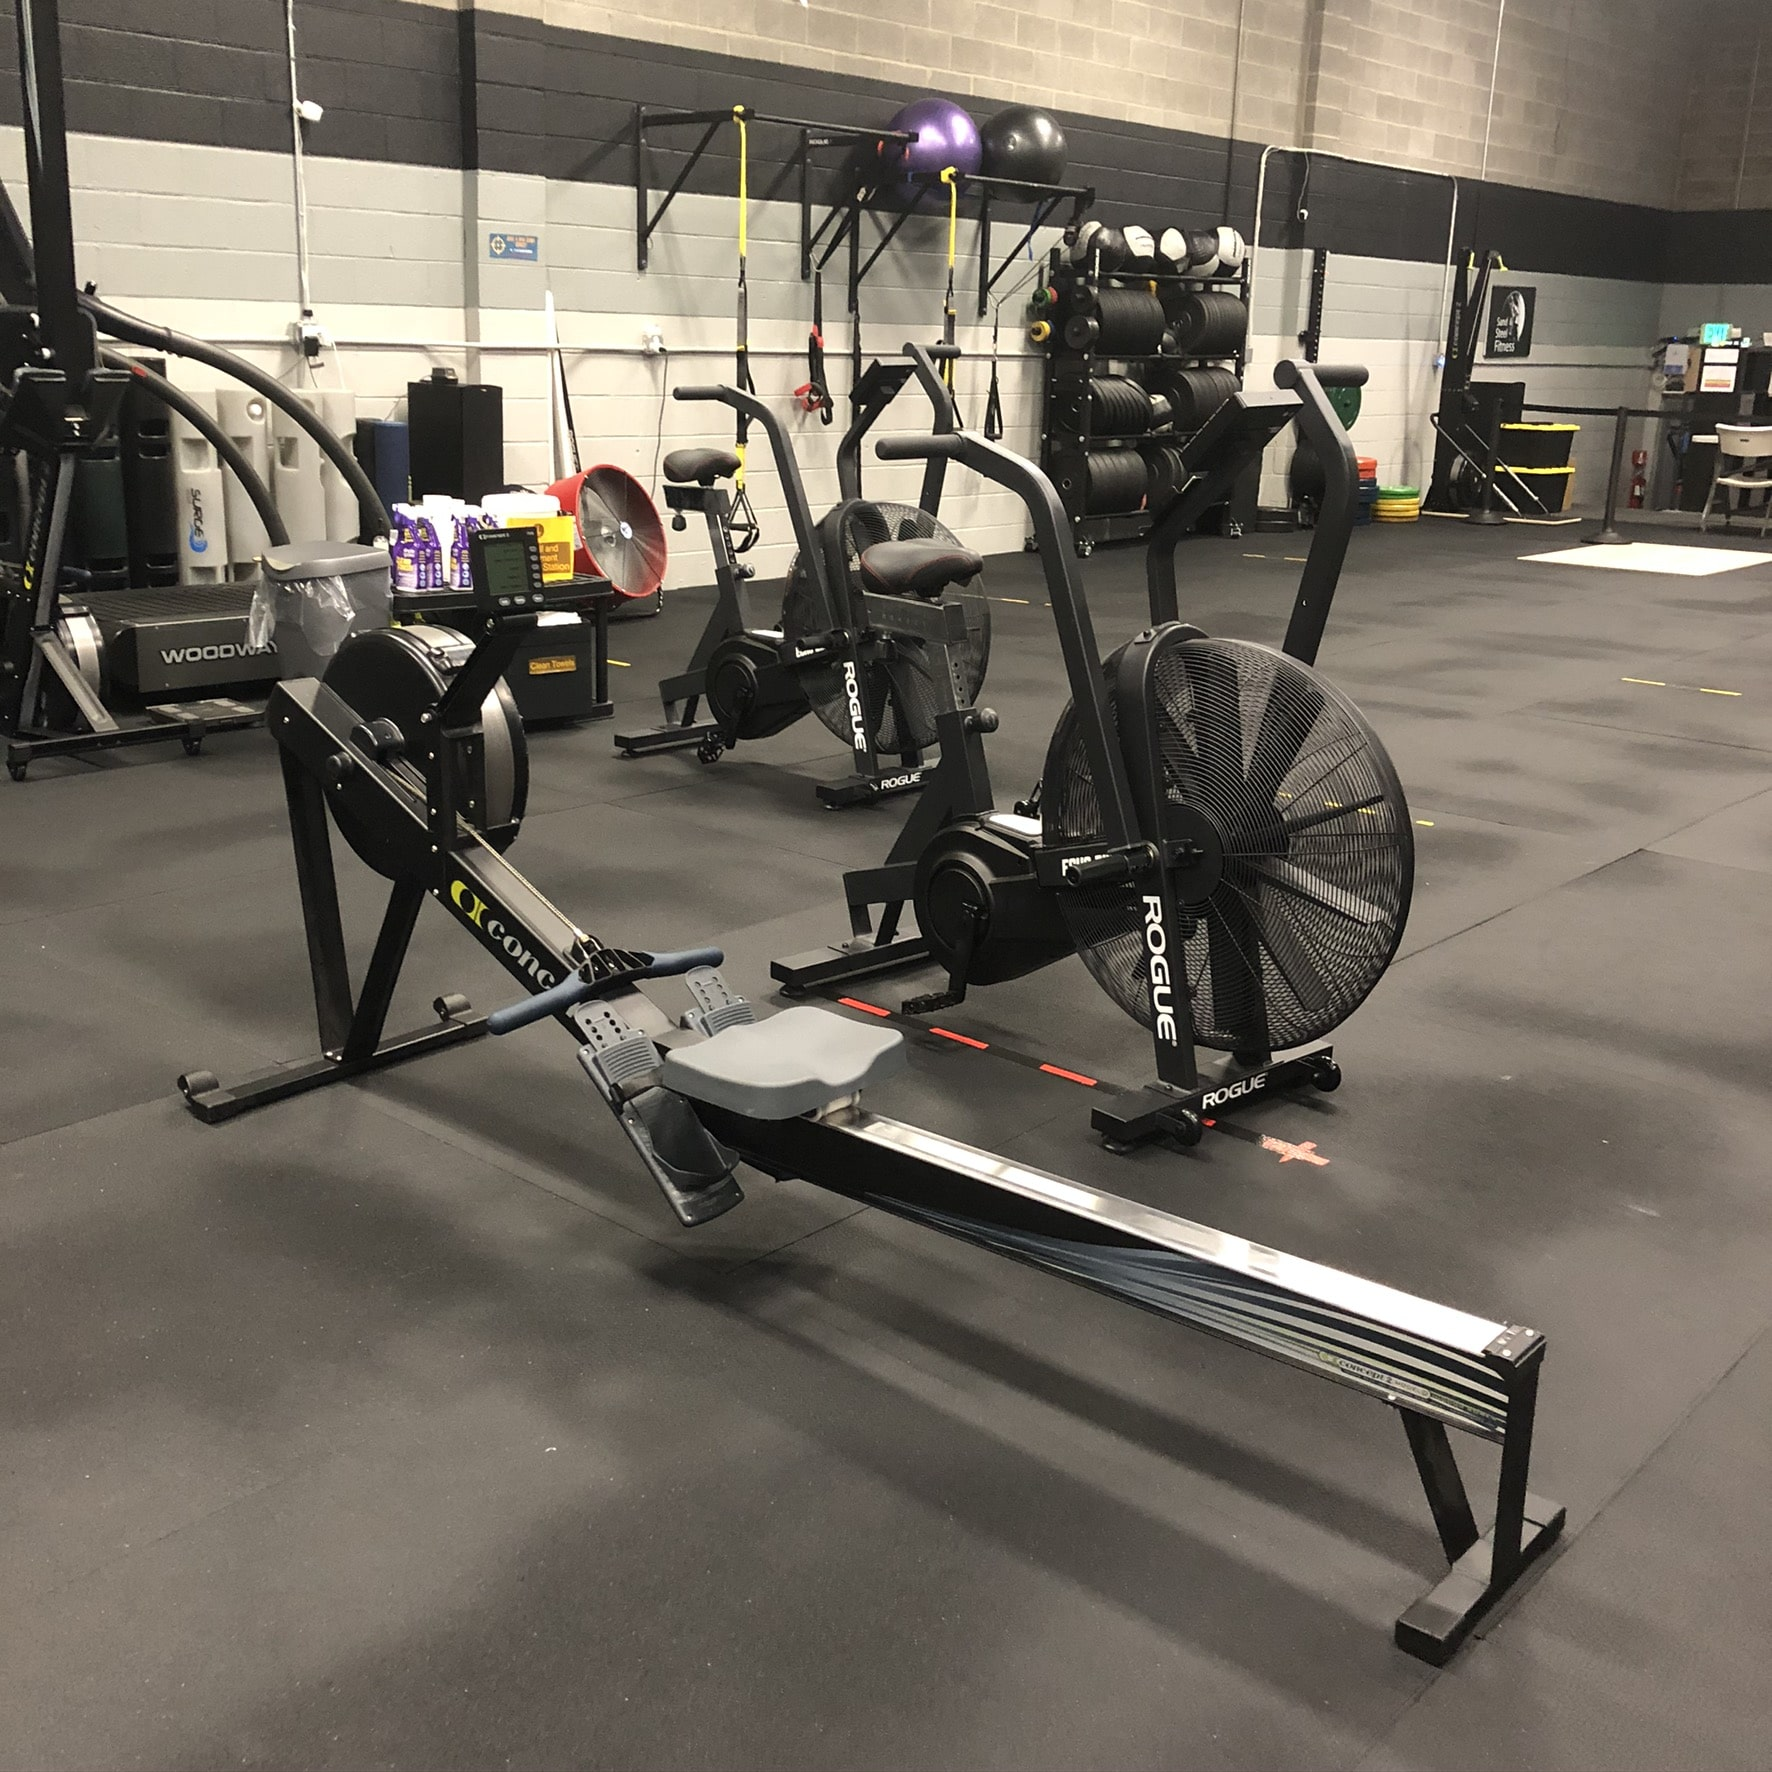 CrossFit Sand & Steel: Personal Training Gym & Mobility Classes